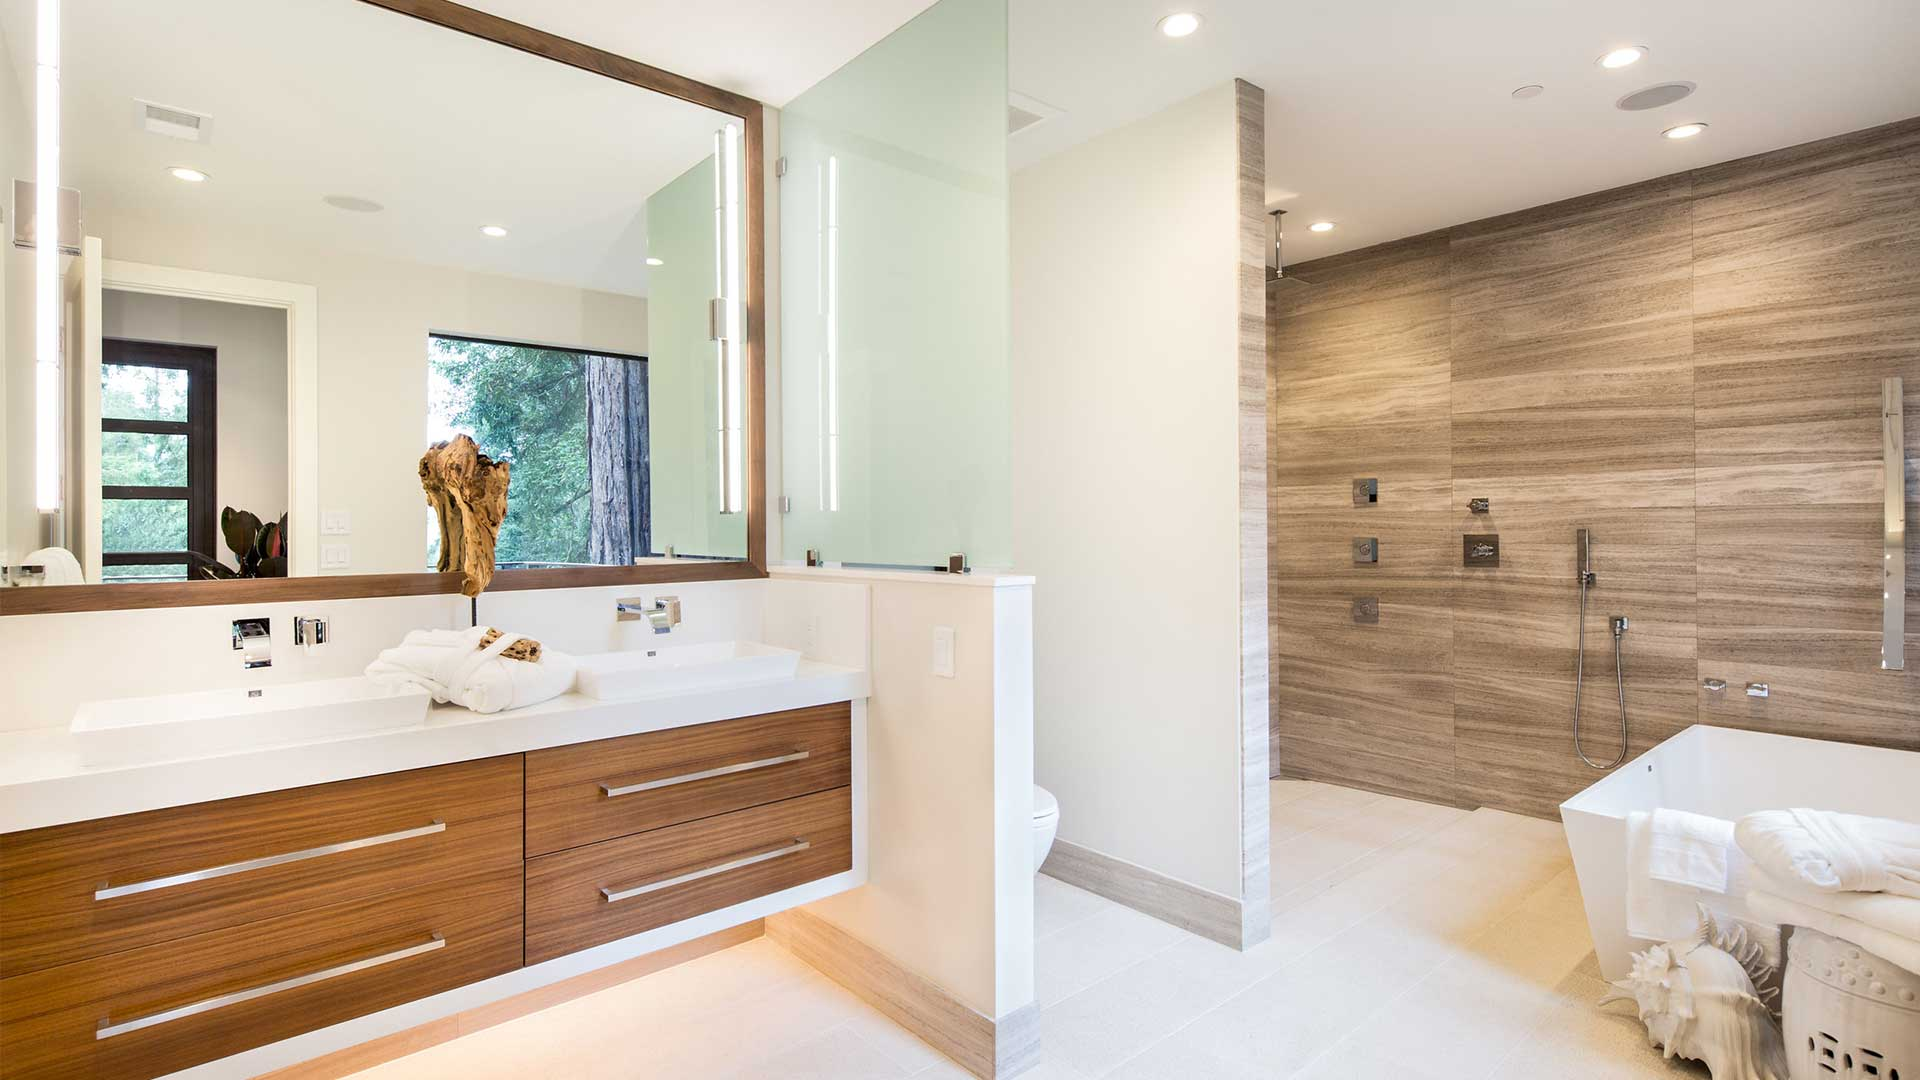 San francisco kitchen remodeling bathroom remodeling and for Kitchen and bathroom wallpaper